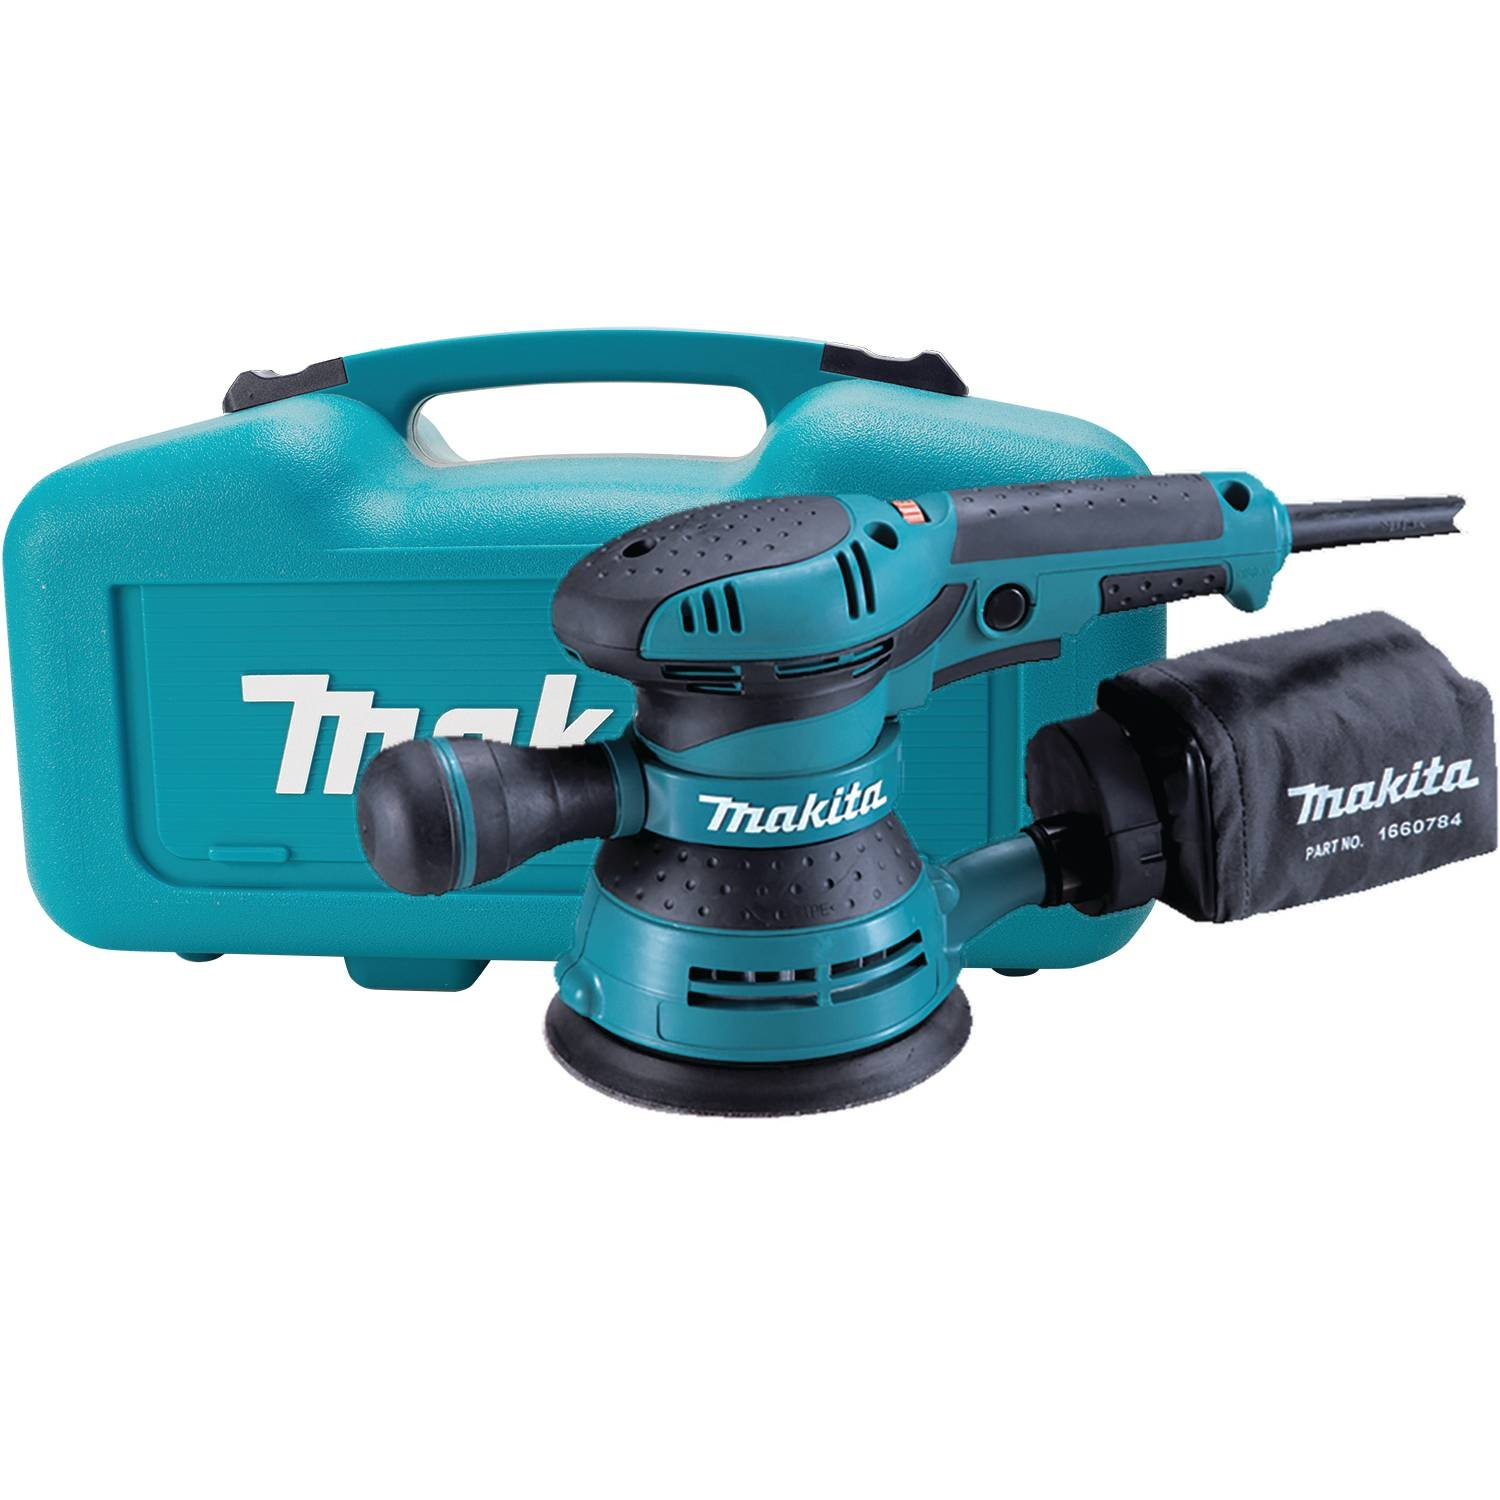 Makita BO5041K featured image 1